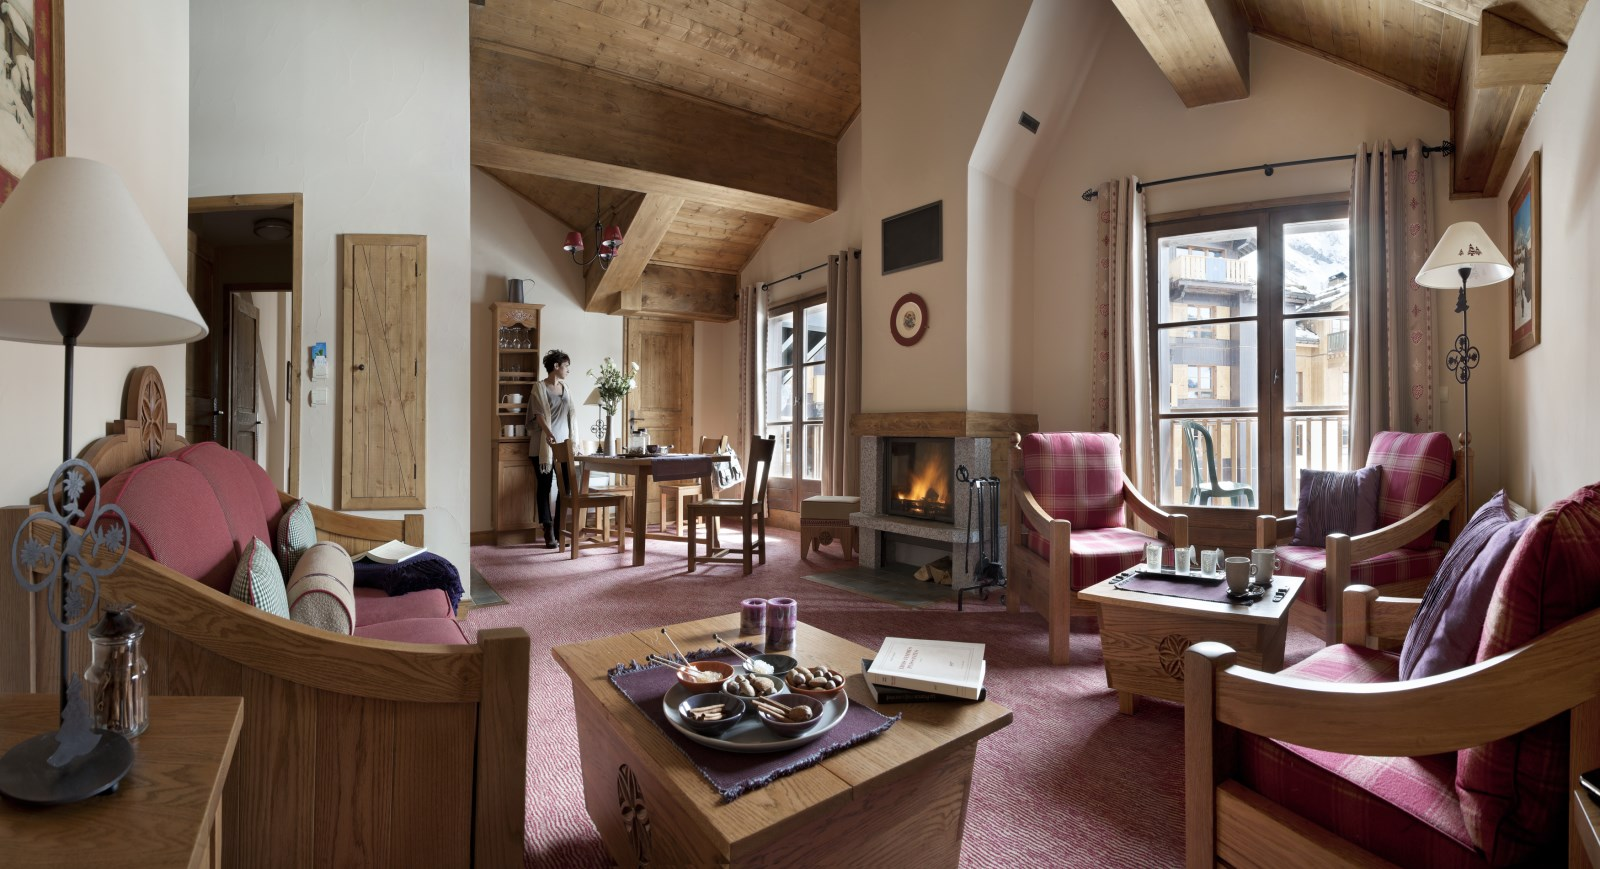 Hotel 5 etoiles montagne hotel residence luxe ski les arcs savoie arc 1950 - Residence de luxe montagne locati ...